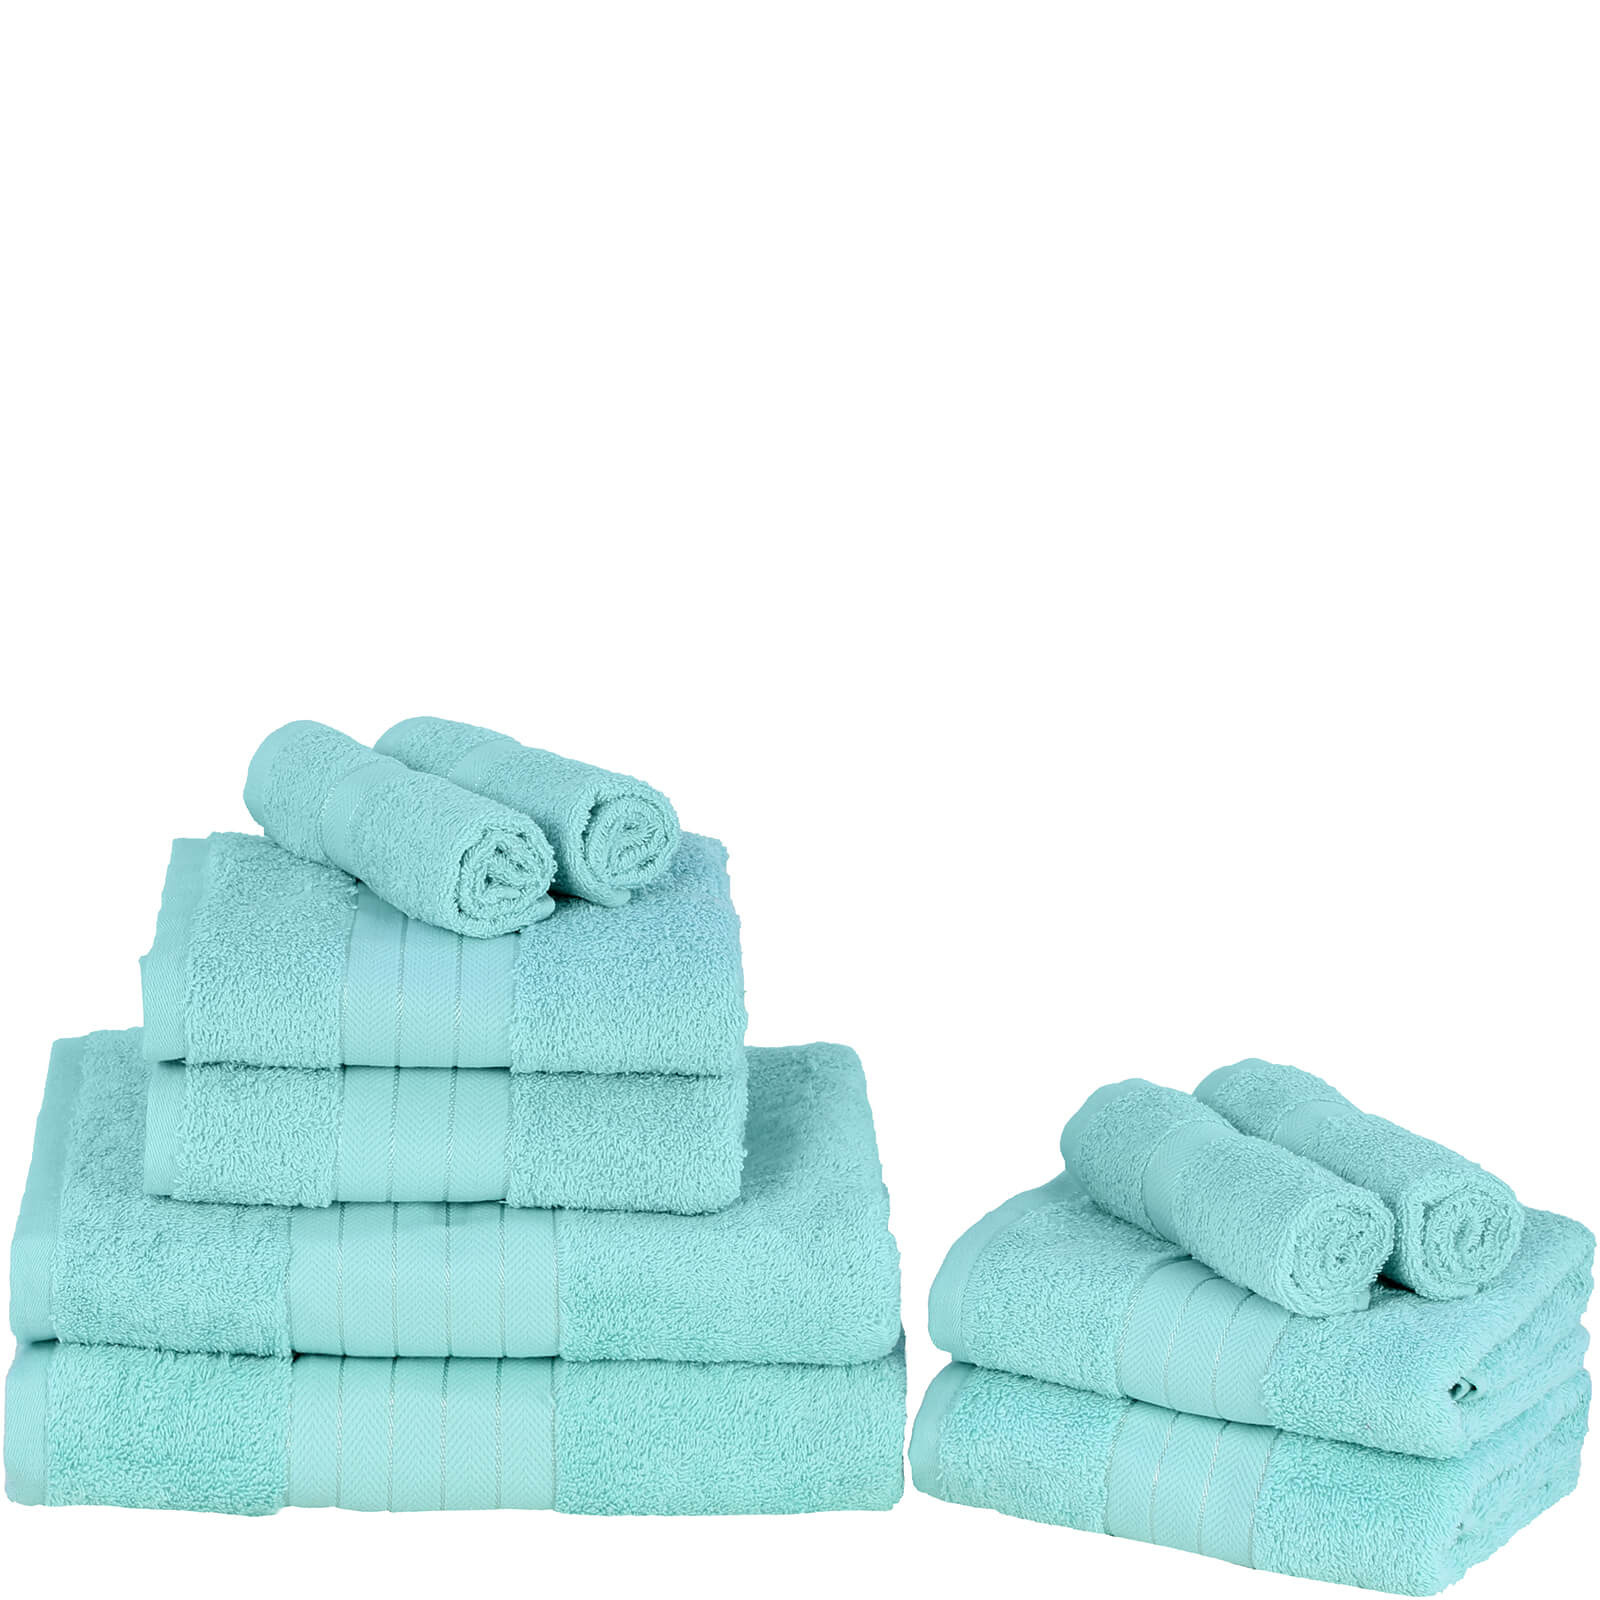 Highams 100% Egyptian Cotton 10 Piece Towel Bale (500 gsm) - Aqua